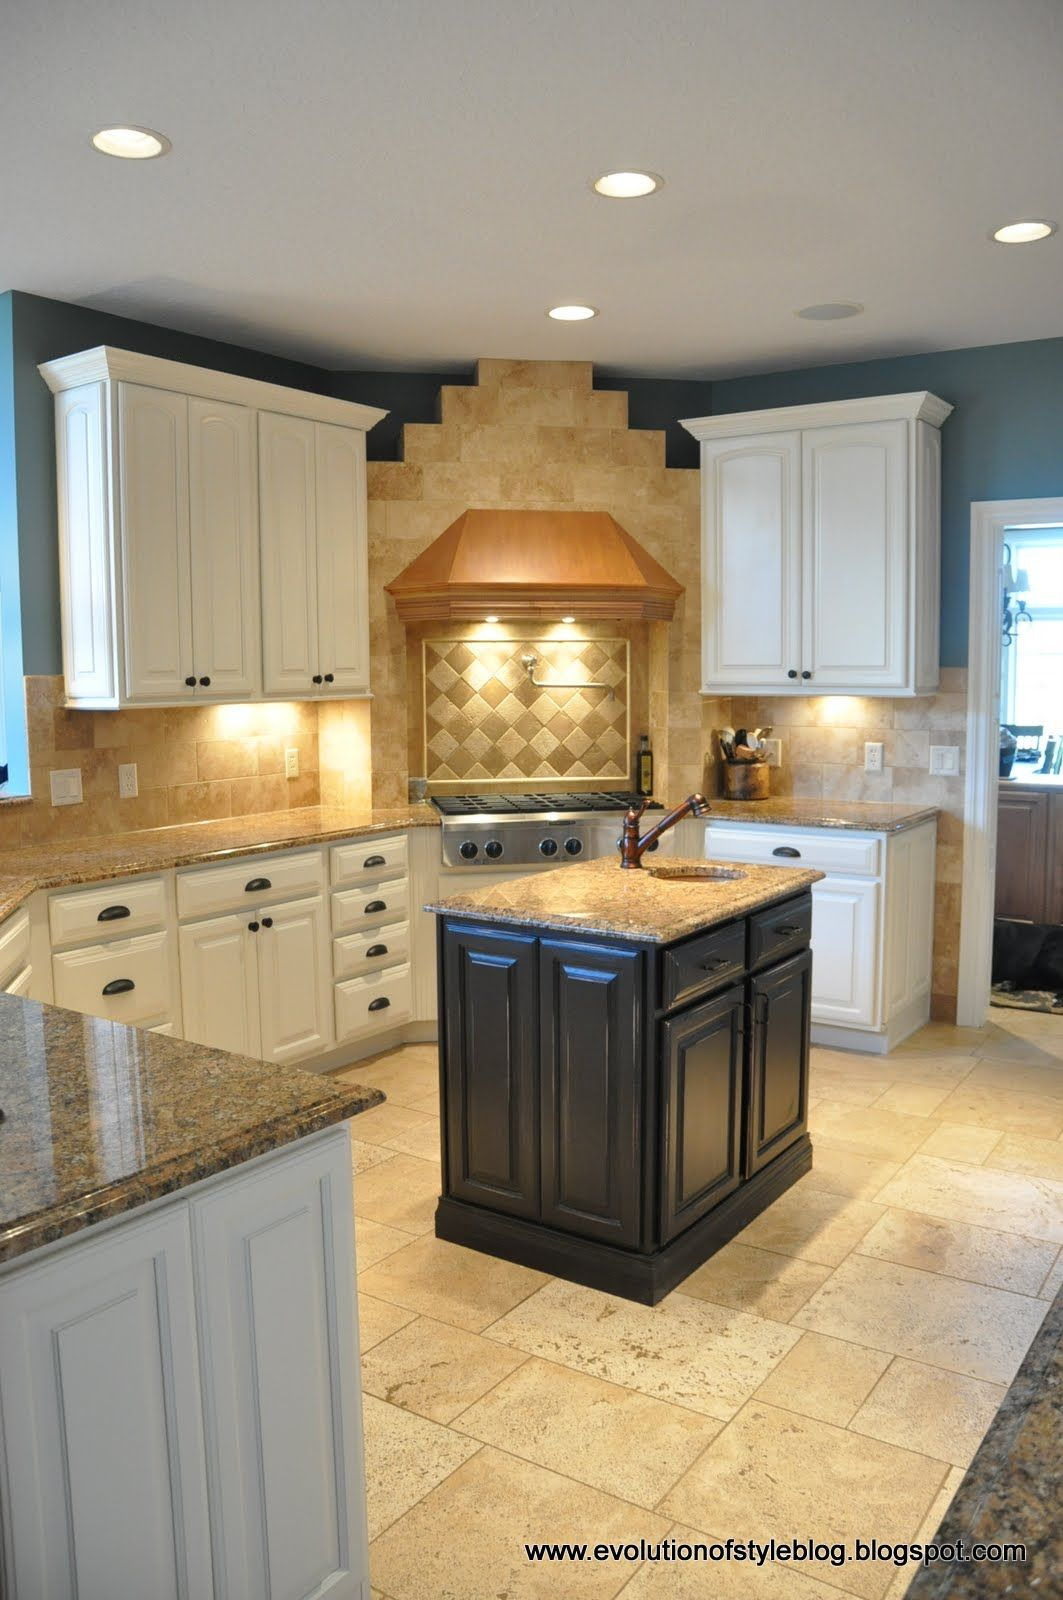 How To Paint Your Kitchen Cabinets Like A Pro Kitchen Cabinets Before And After Painting Kitchen Cabinets Kitchen Cabinet Colors